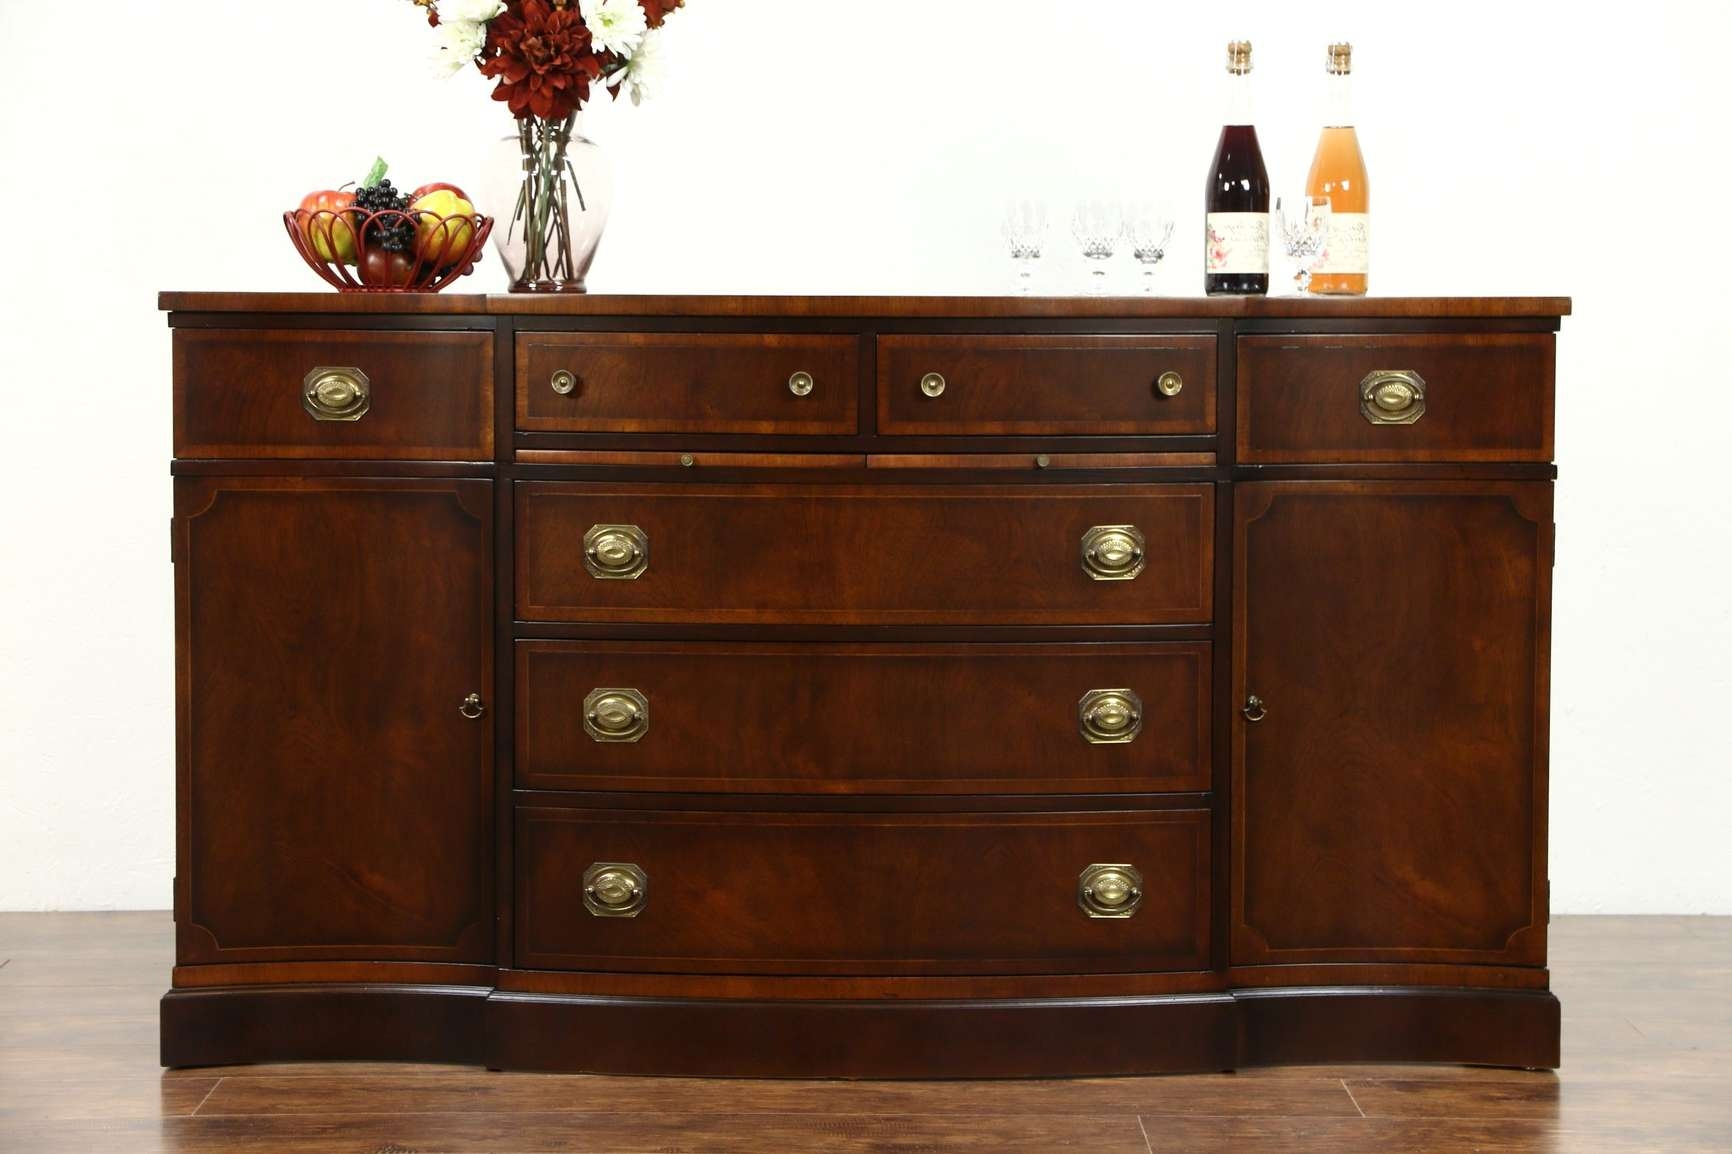 Sold – Traditional Mahogany Sideboard, Server Or Buffet, Signed Pertaining To Mahogany Sideboards Buffets (View 19 of 20)